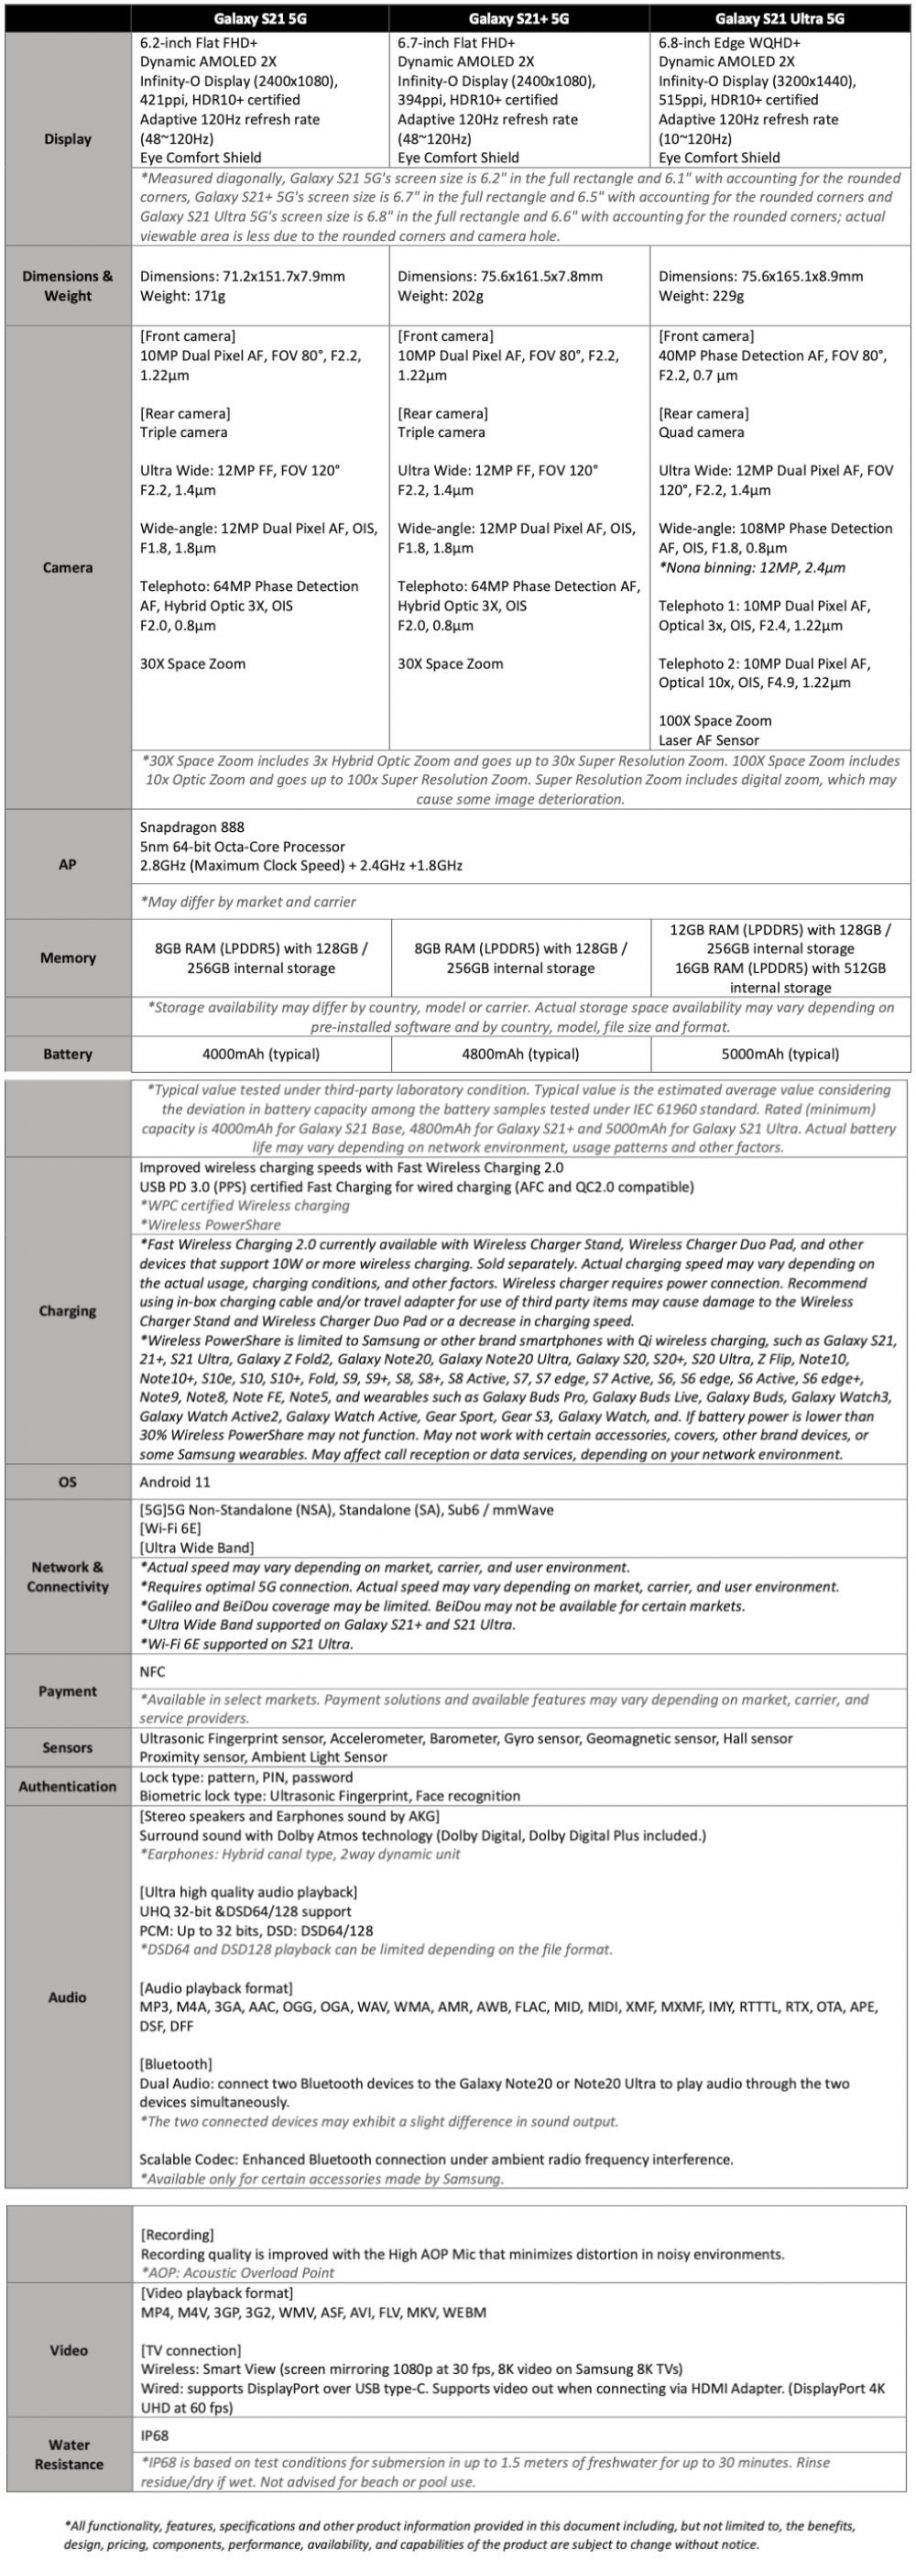 Samsung Galaxy S21 Series Specifications